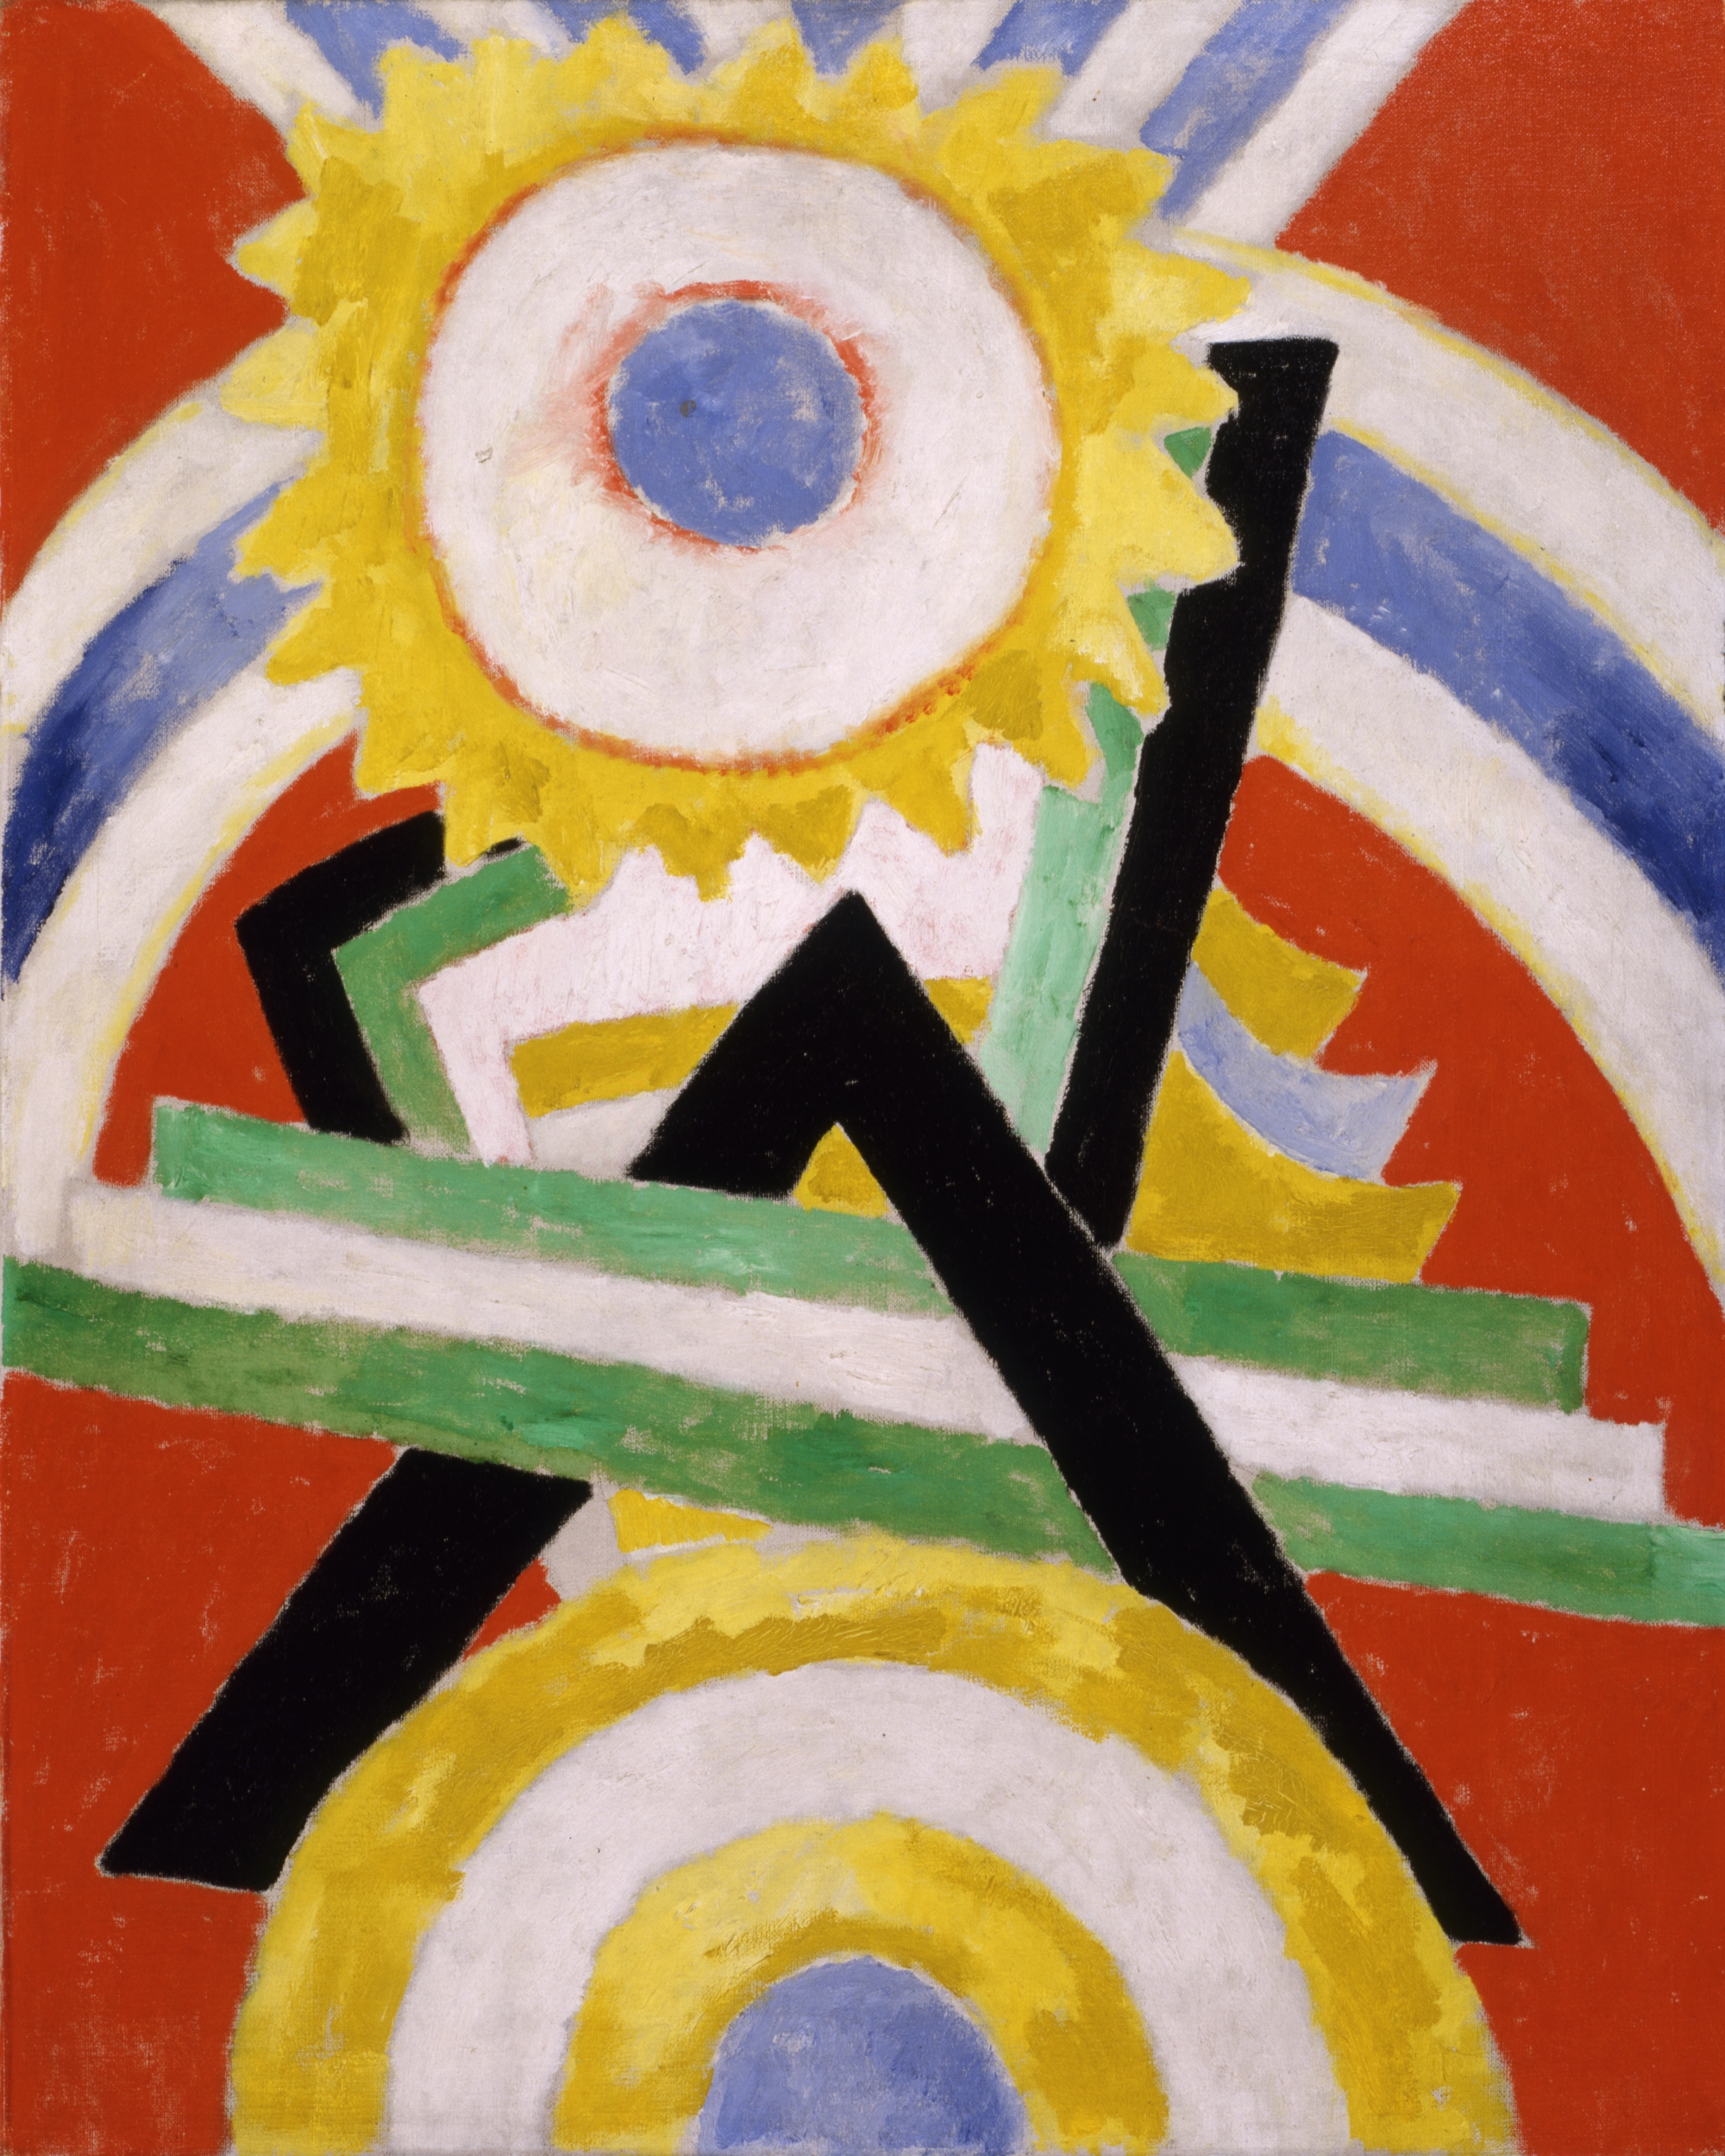 Marsden Hartley, Pre-War Pageant. 1914. Gift of Ferdinand Howald